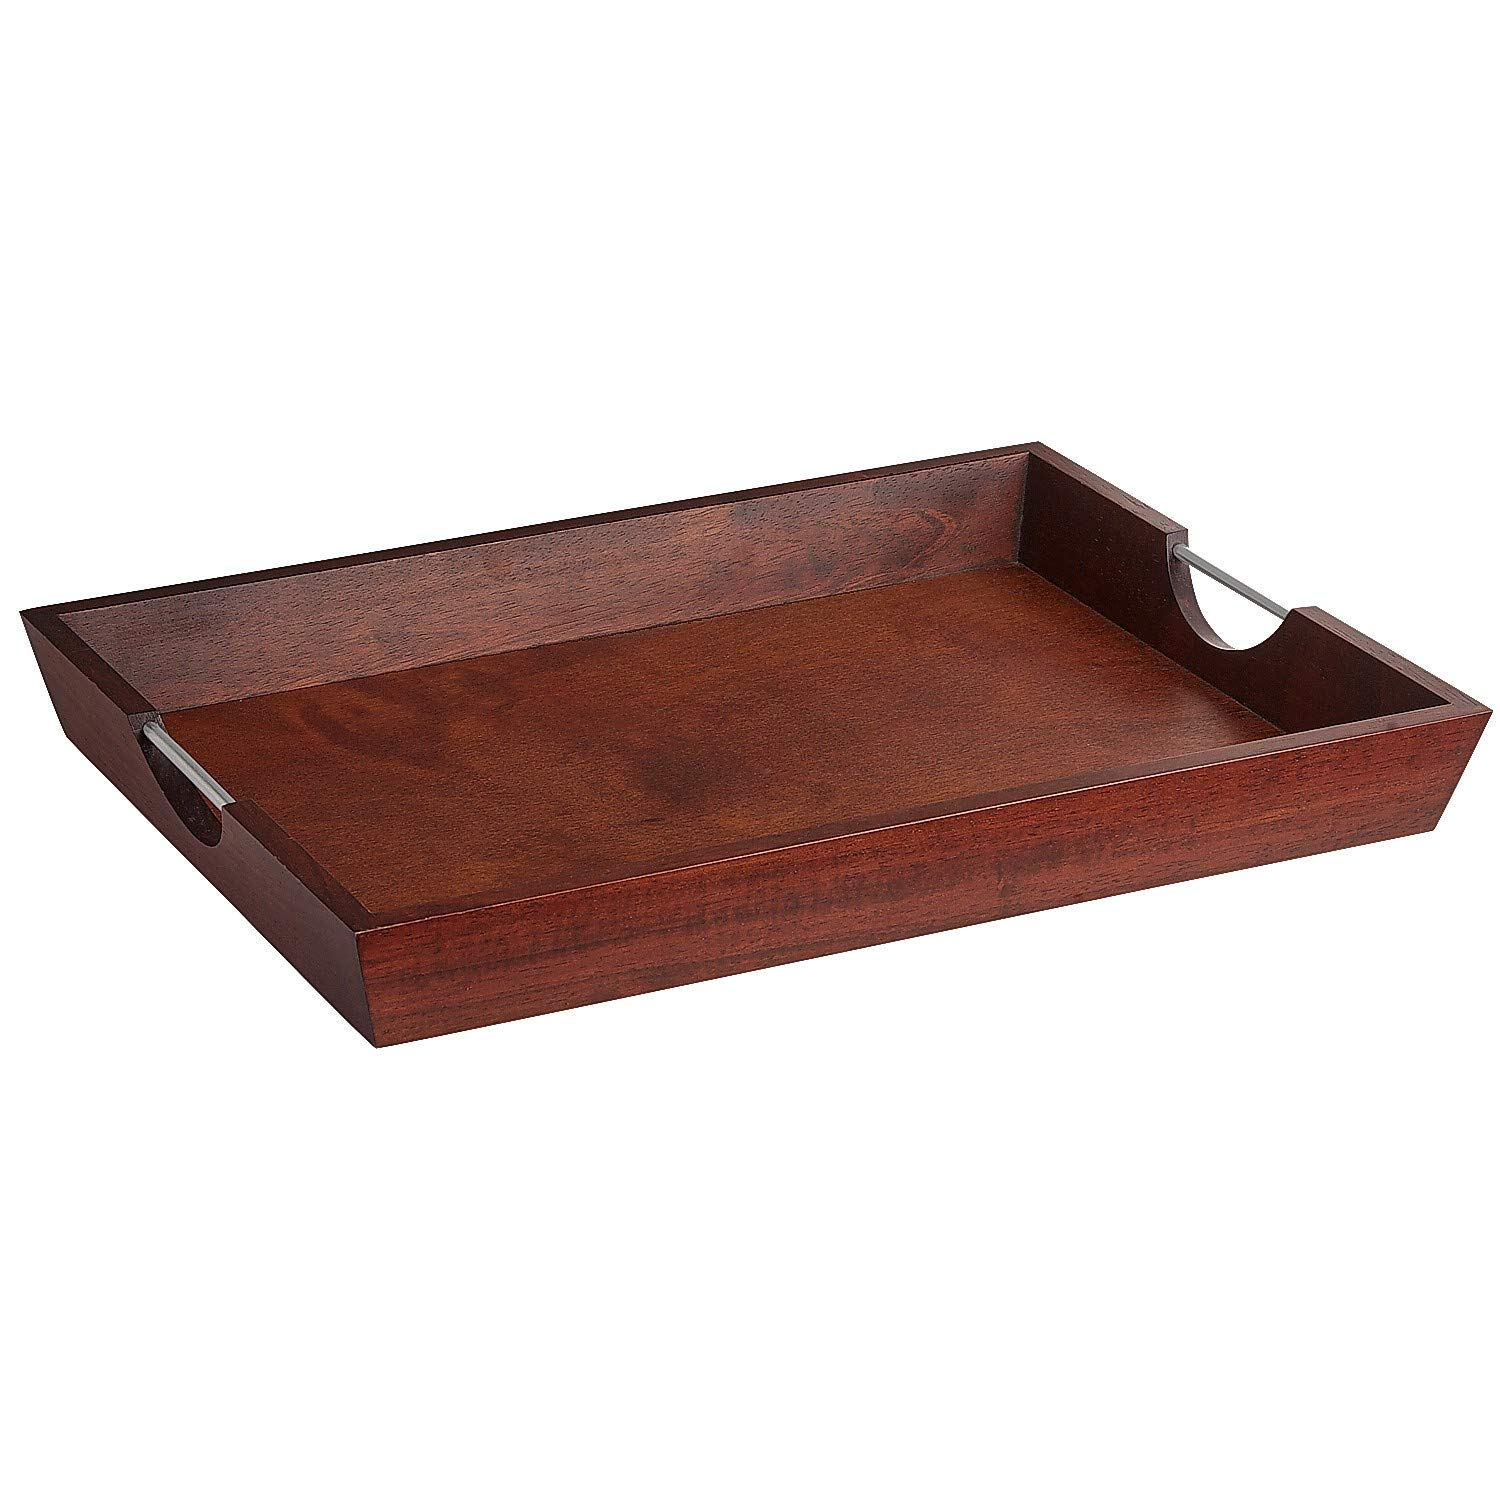 Brown Braden Decorative Home Decor Tray by Pier 1 Imports by Pier 1 Imports